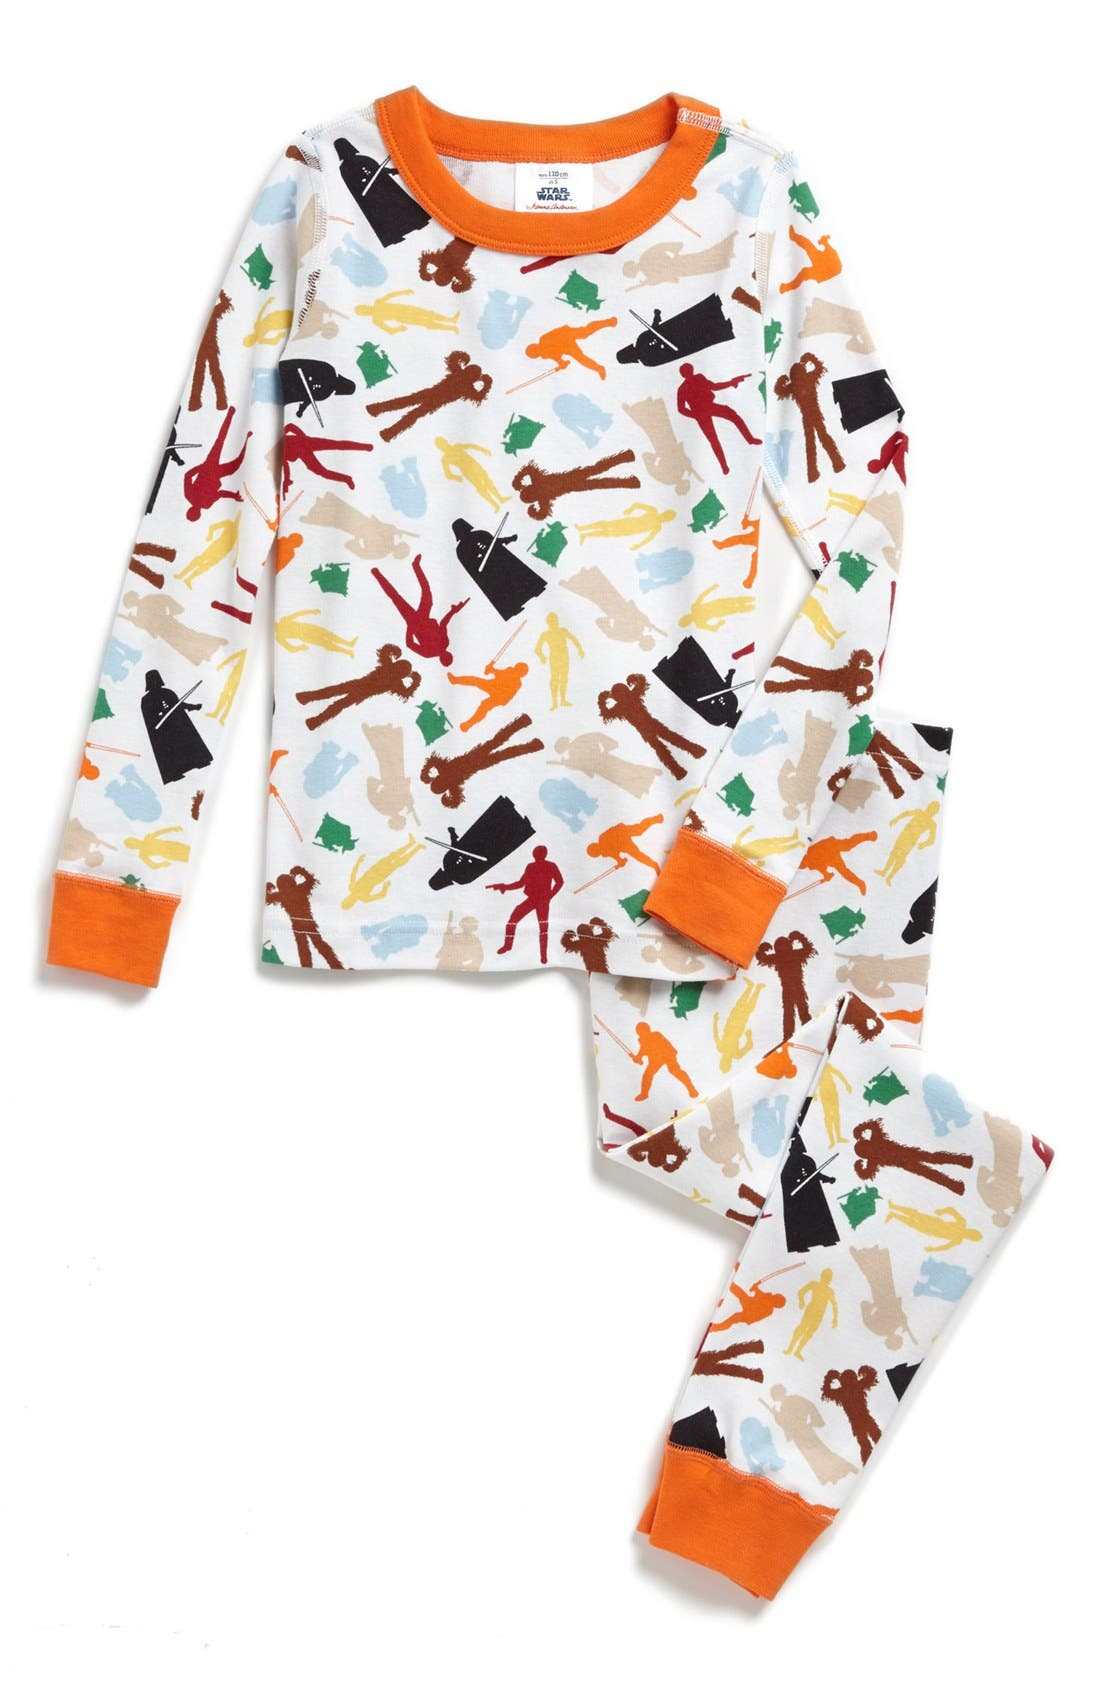 Main Image - Hanna Andersson 'Star Wars™ Characters' Two-Piece Organic Cotton Fitted Pajamas (Little Boys & Big Boys)